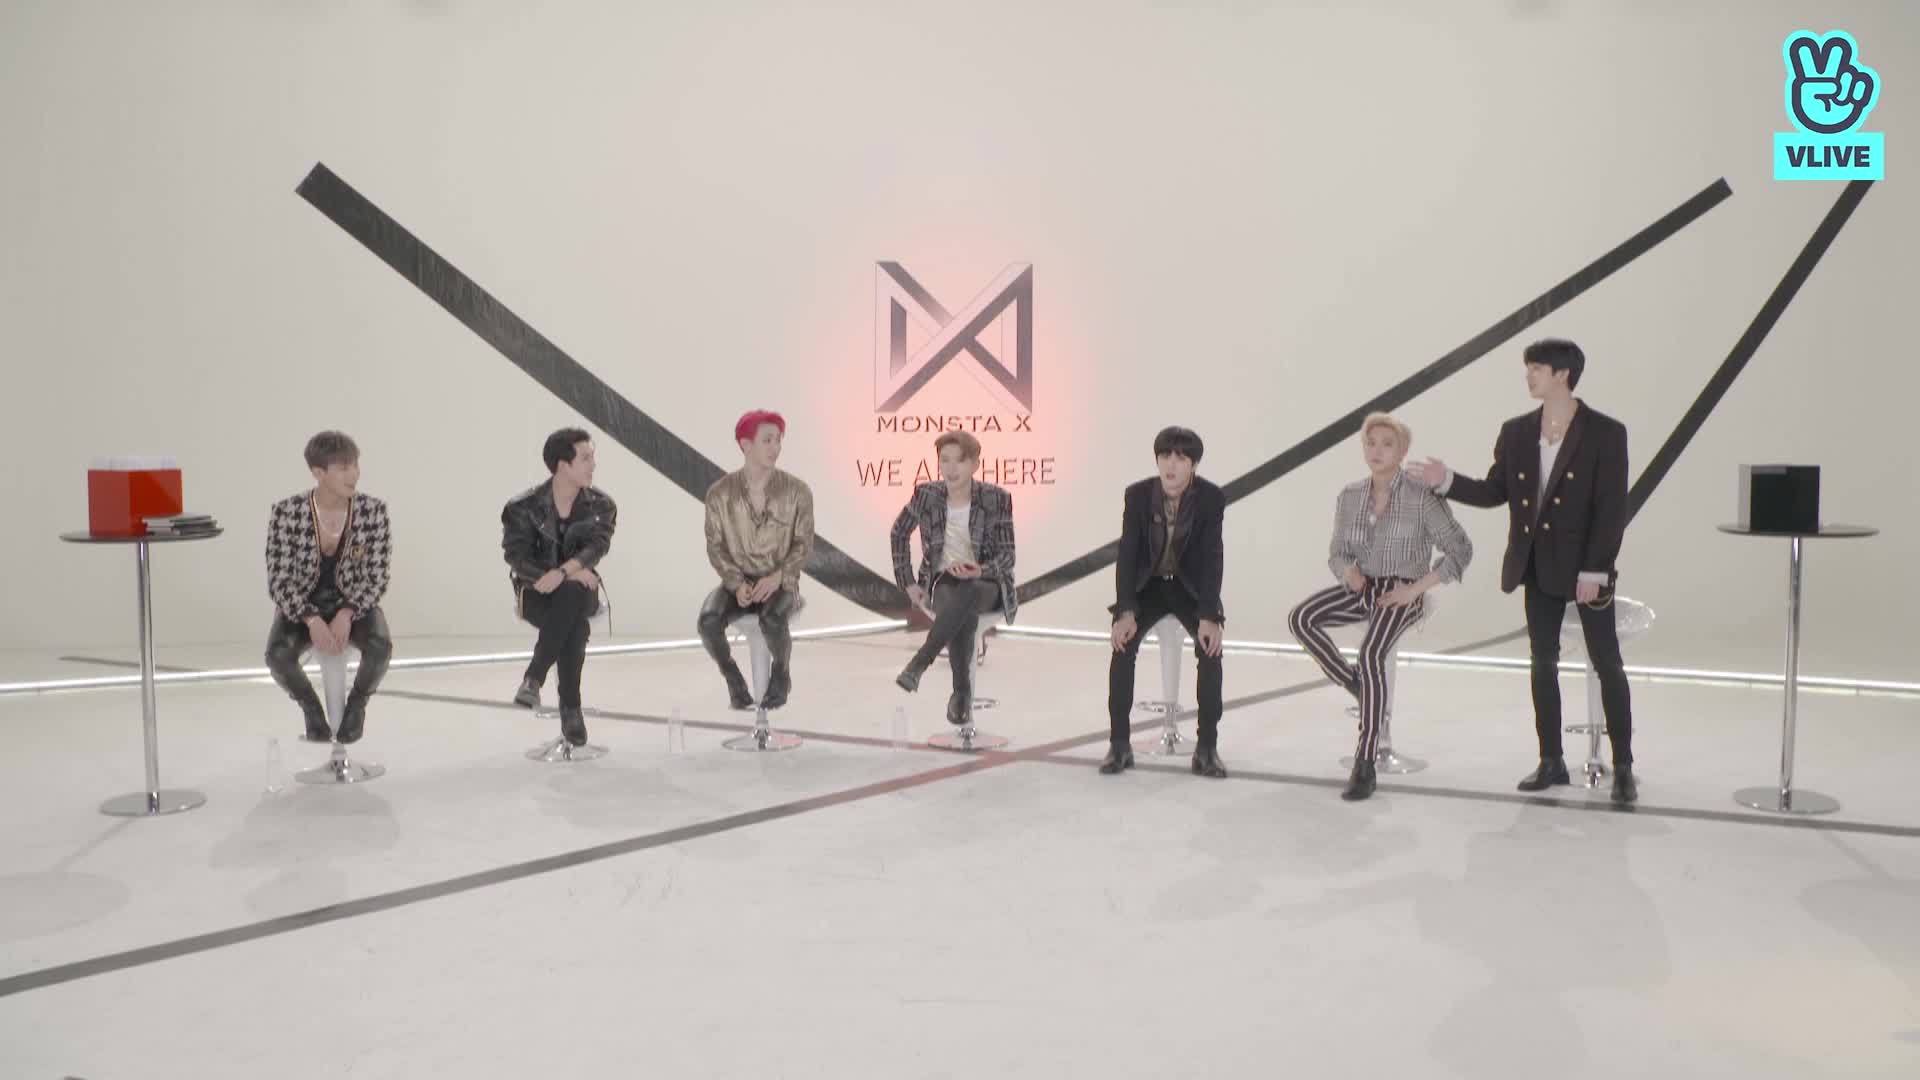 [Replay] MONSTA X [Take 2] COMEBACK VLIVE